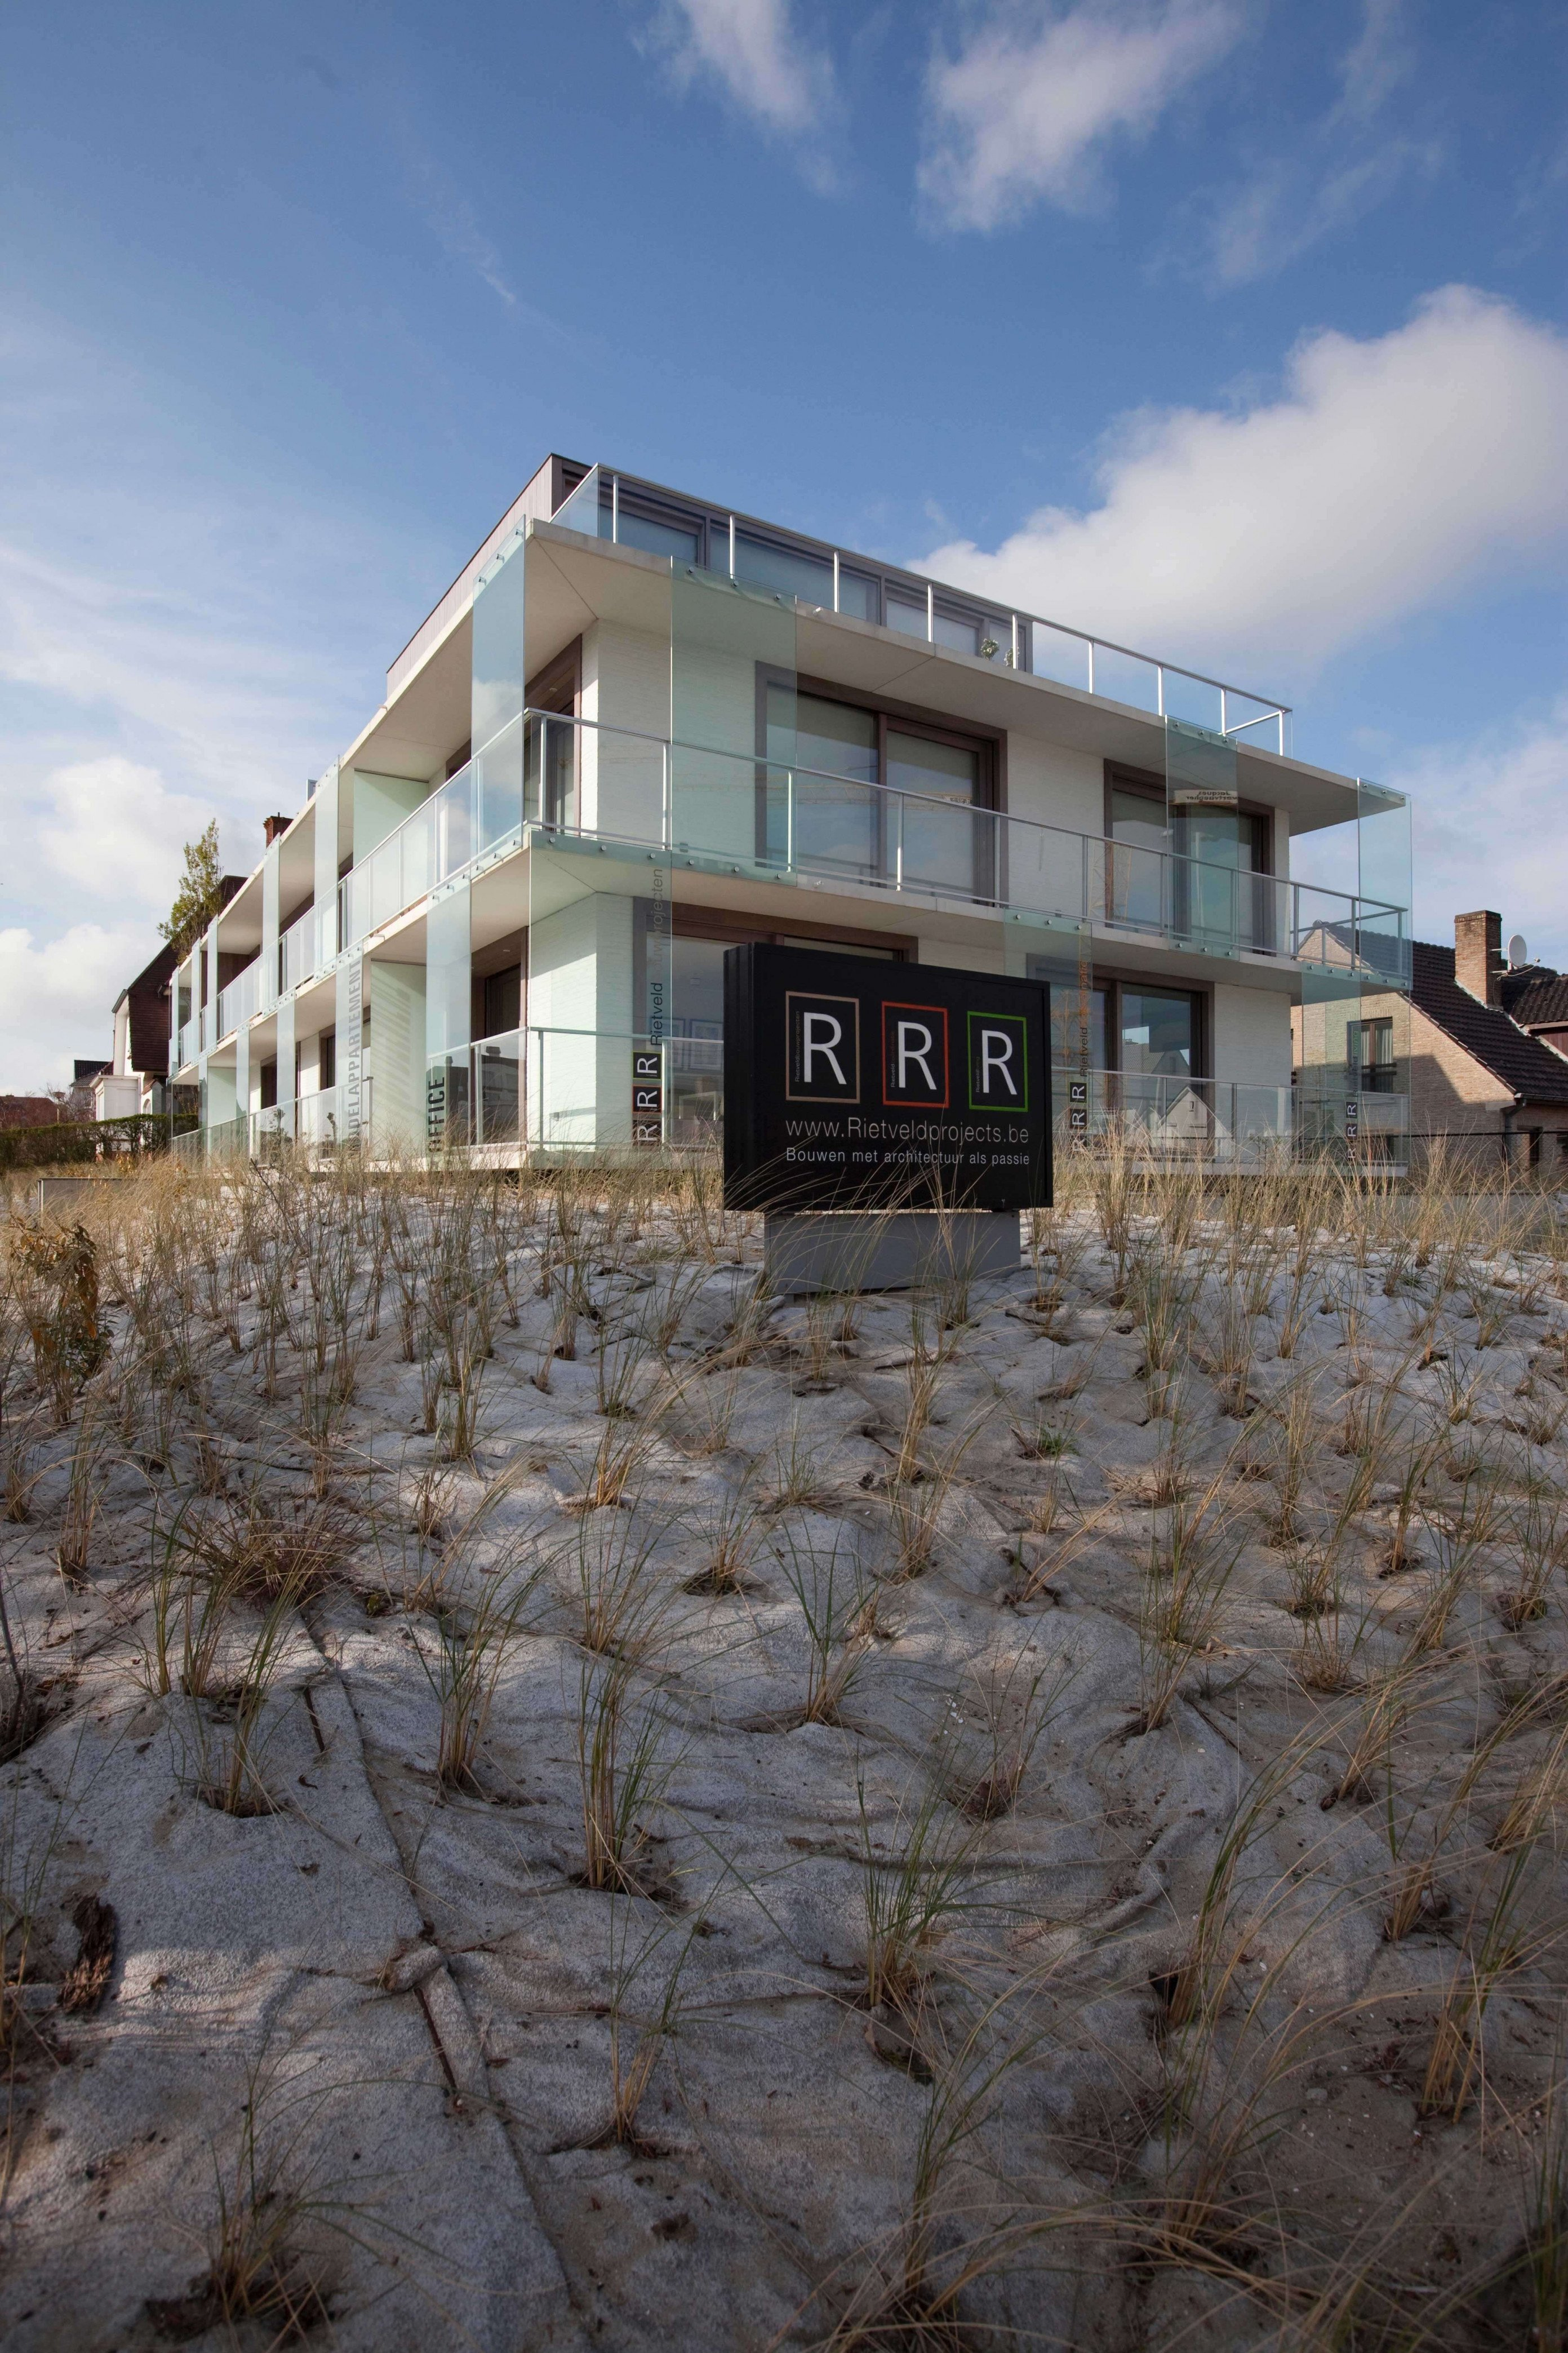 Rietveldprojects.be-Eames-appartement-design-architectuur-kust18